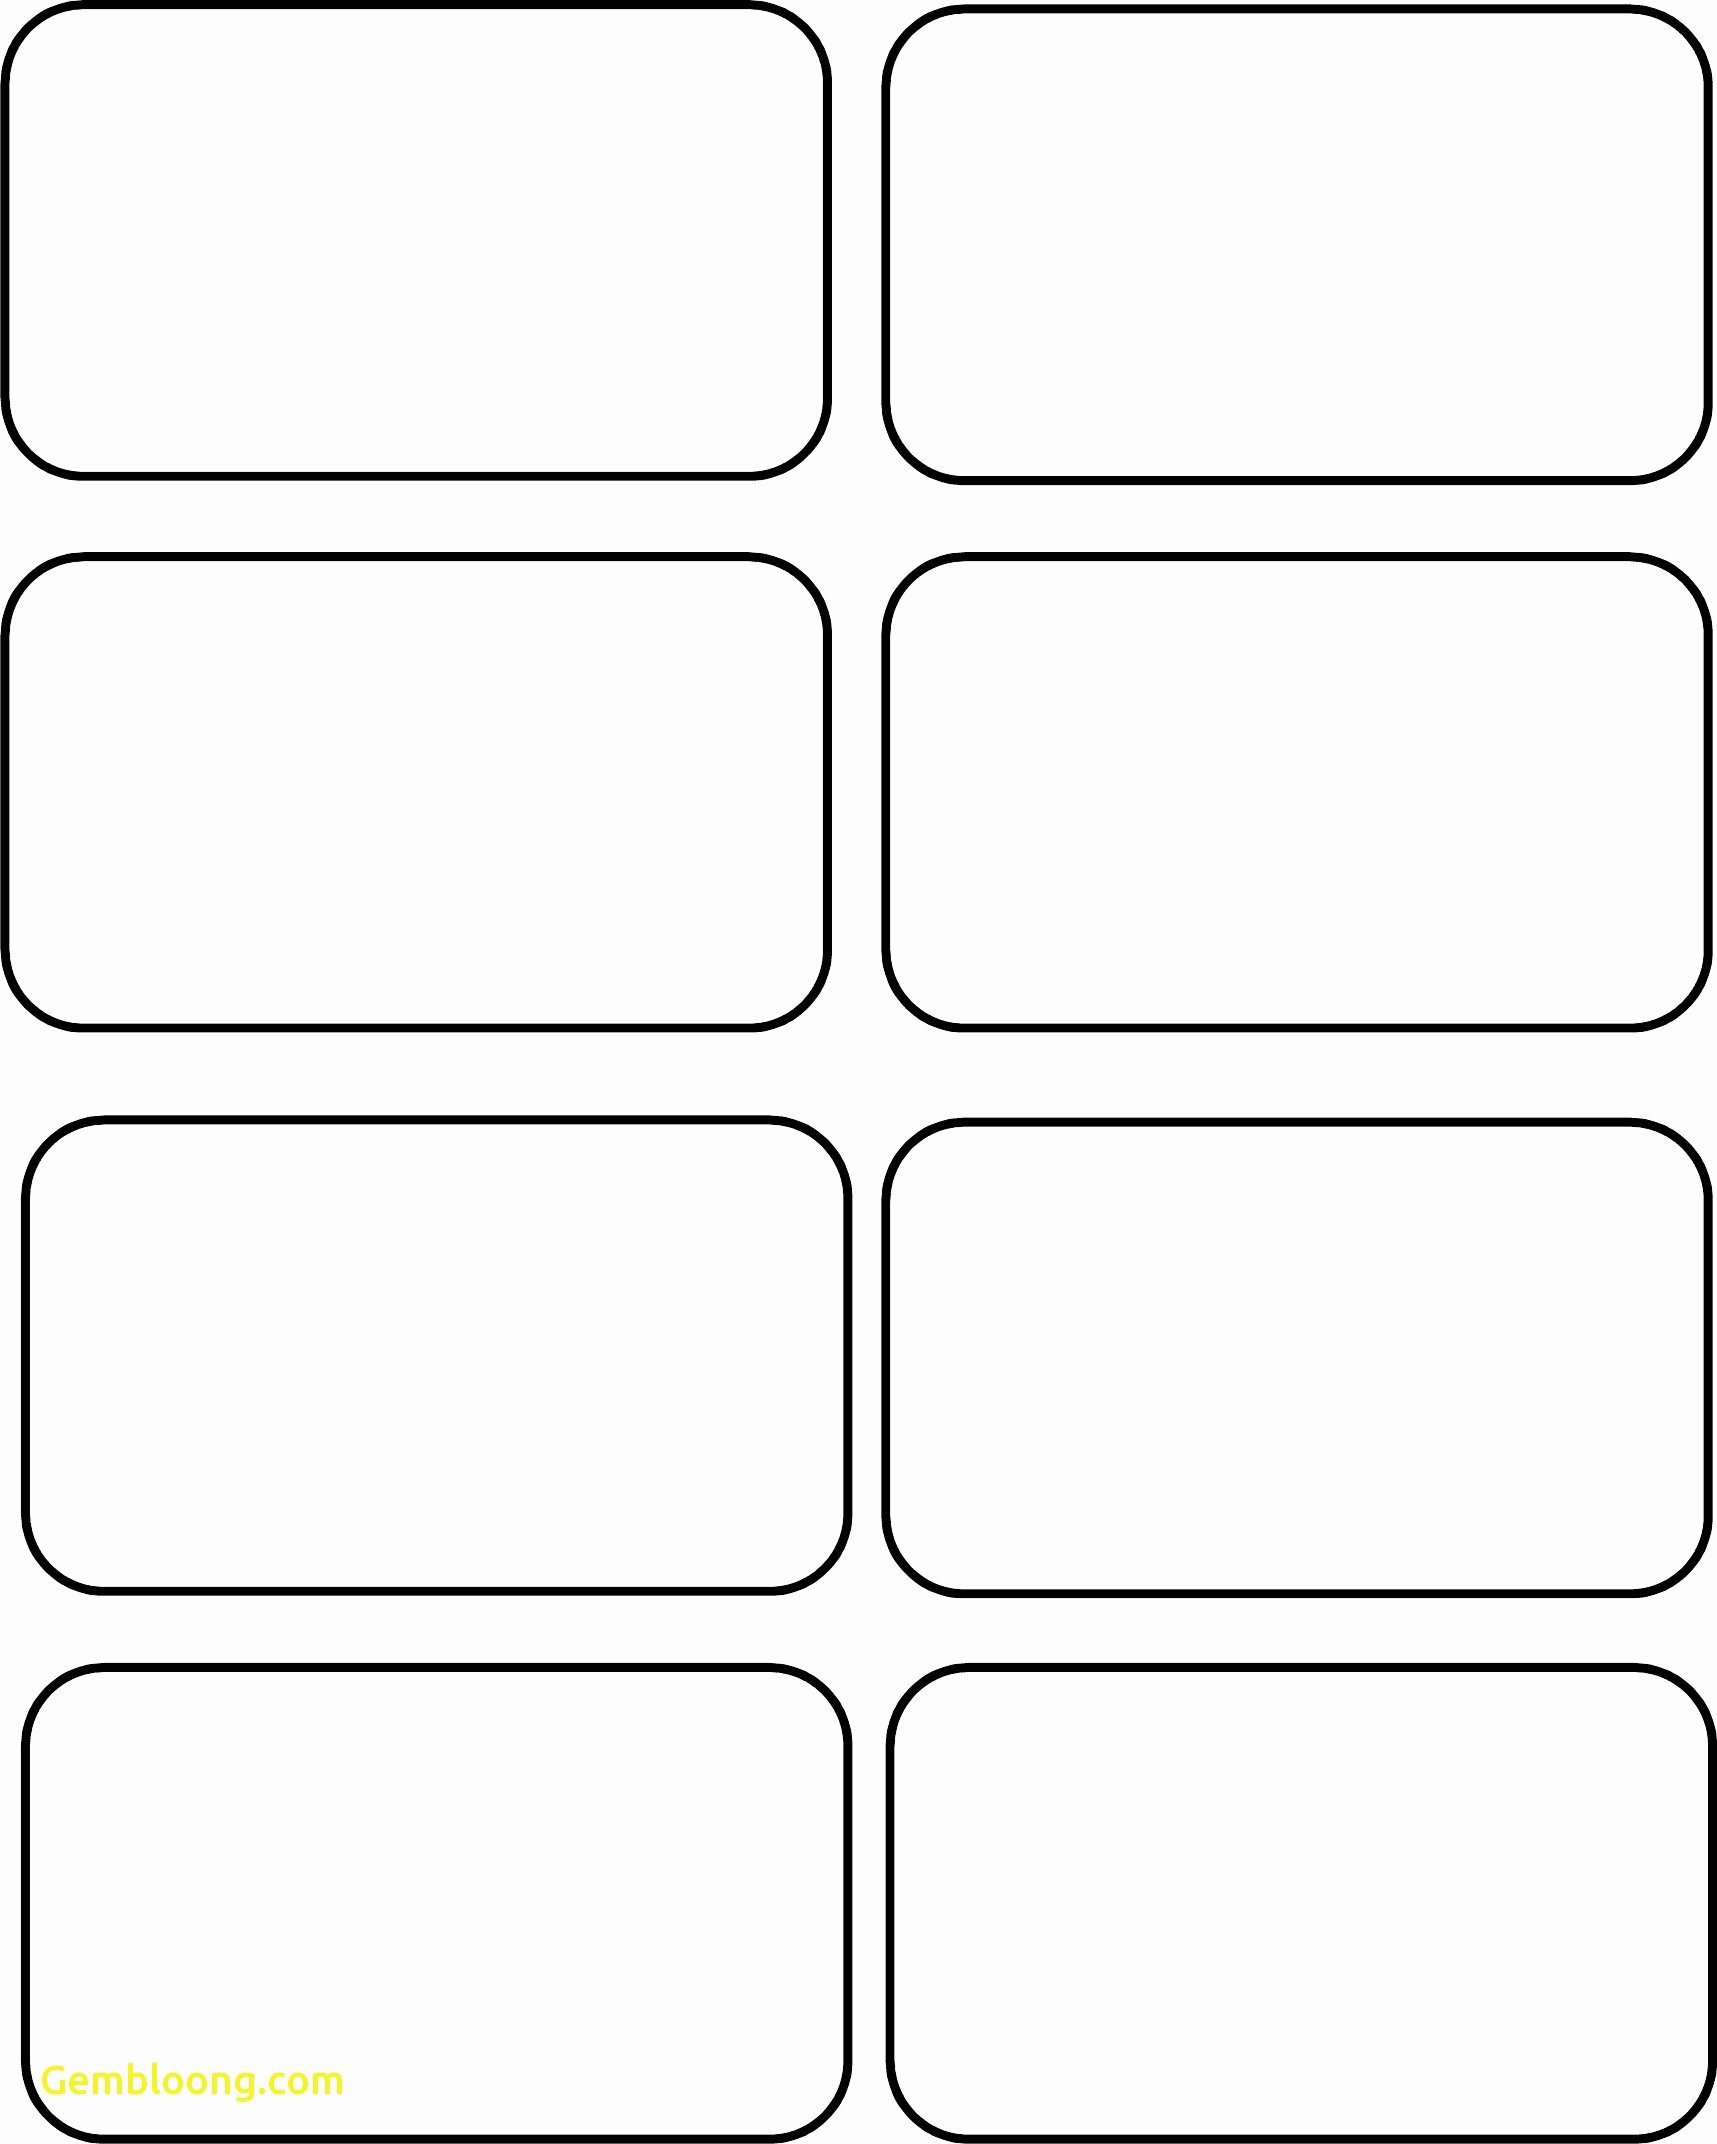 Name Tag Template Free Beautiful Free Printable Name Tags Template